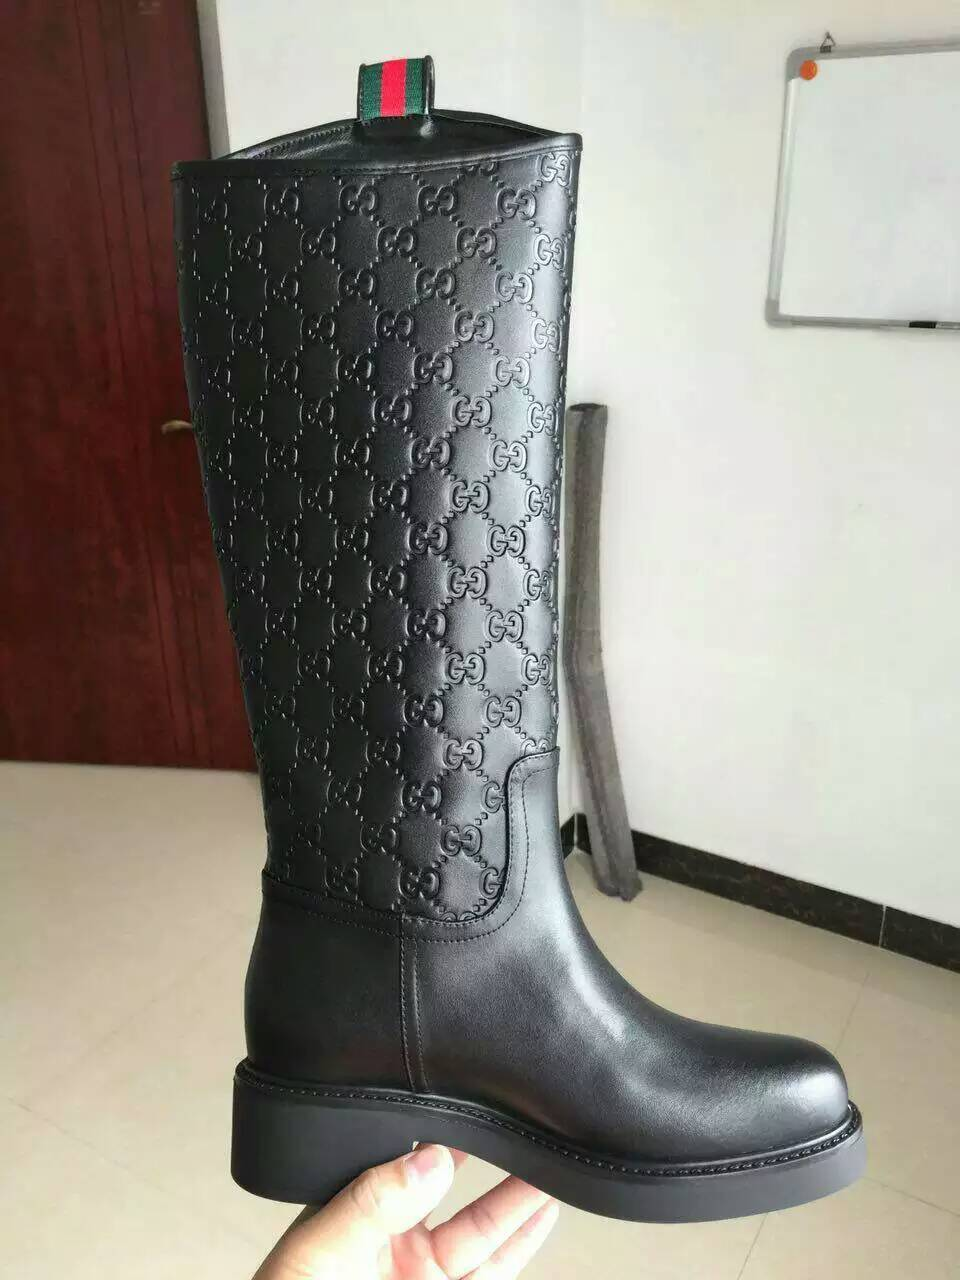 Awesome Replica Gucci Boots For Women 98032 Express Shipping To London46